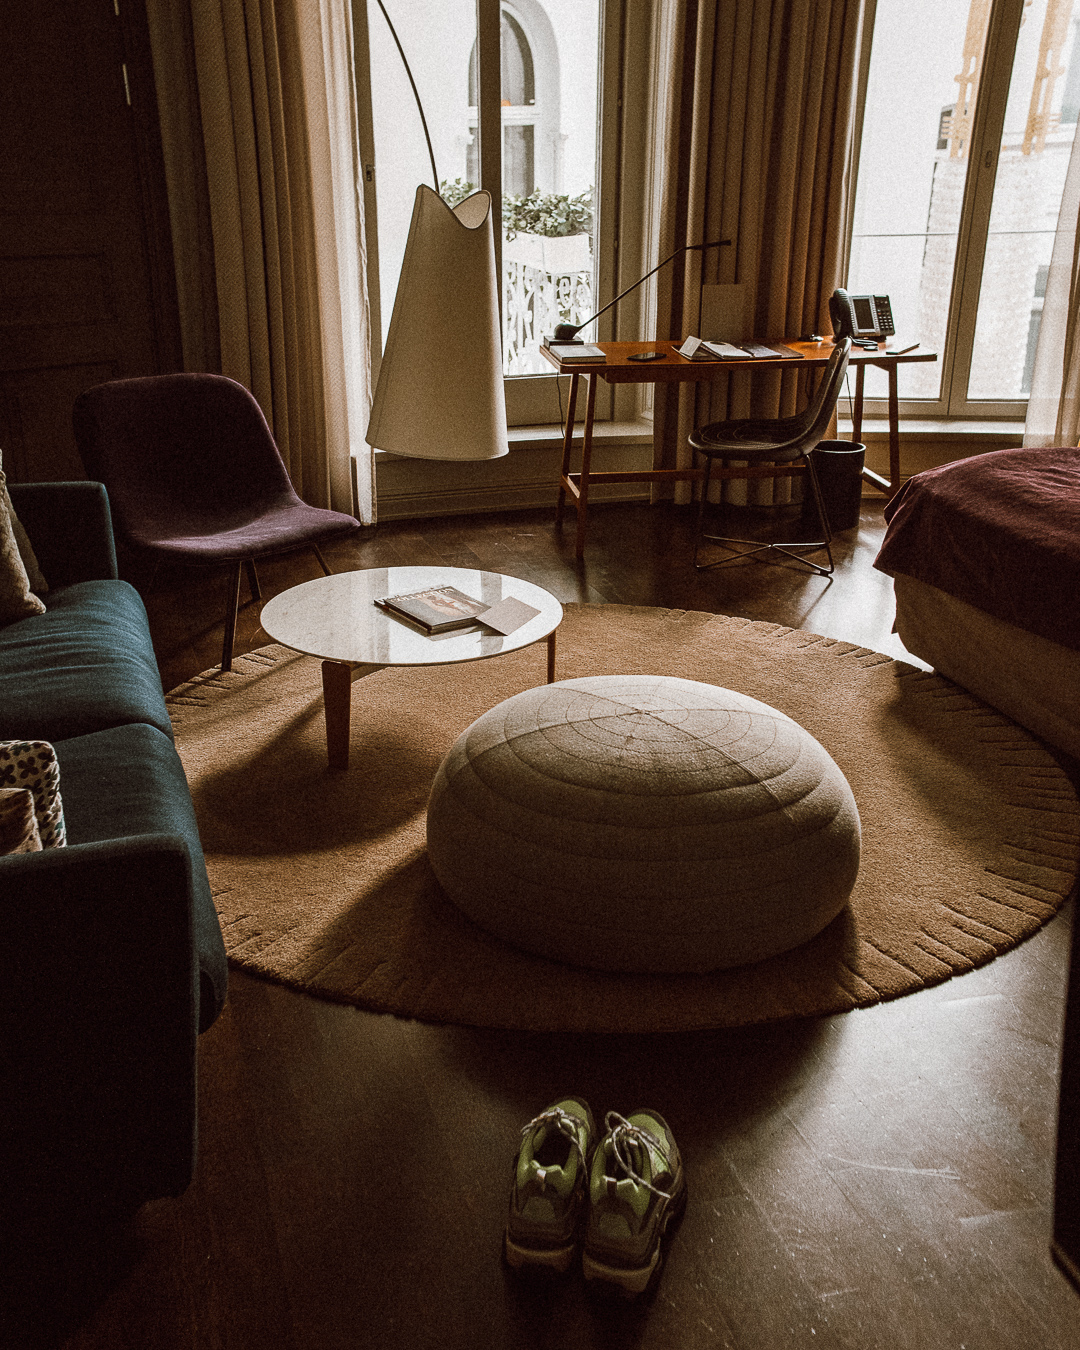 ◎ View from my room at Nobis Hotel Stockholm